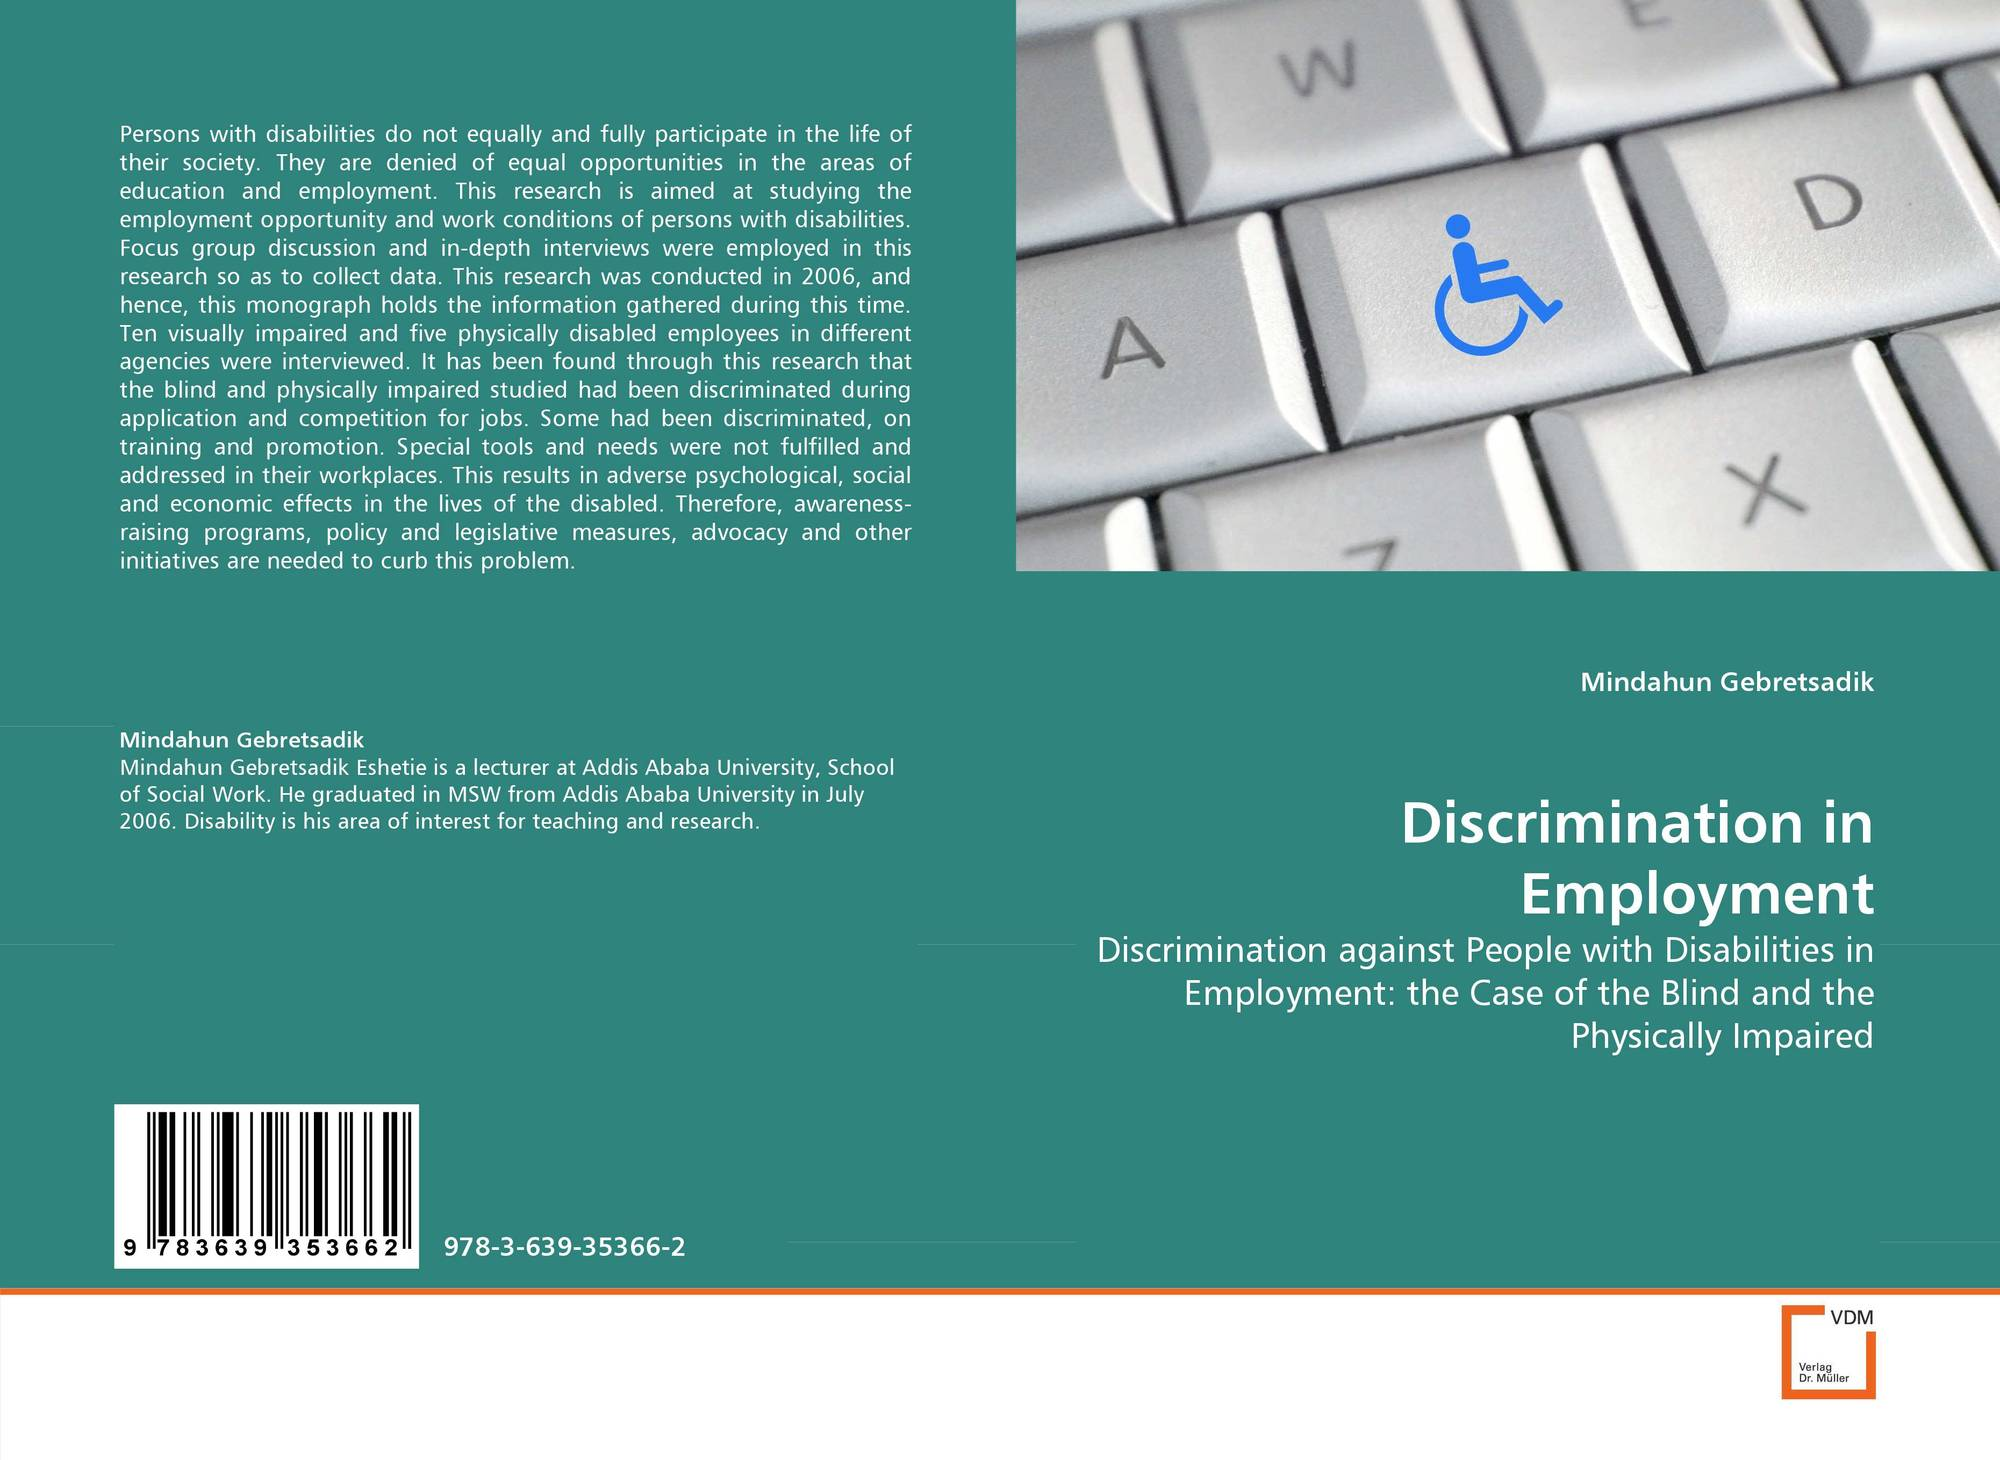 1 discrimination in employment Sex or gender discrimination in employment involves treating someone unfavorably because of the person's sex, whether they are applying for a job or are a current employee.